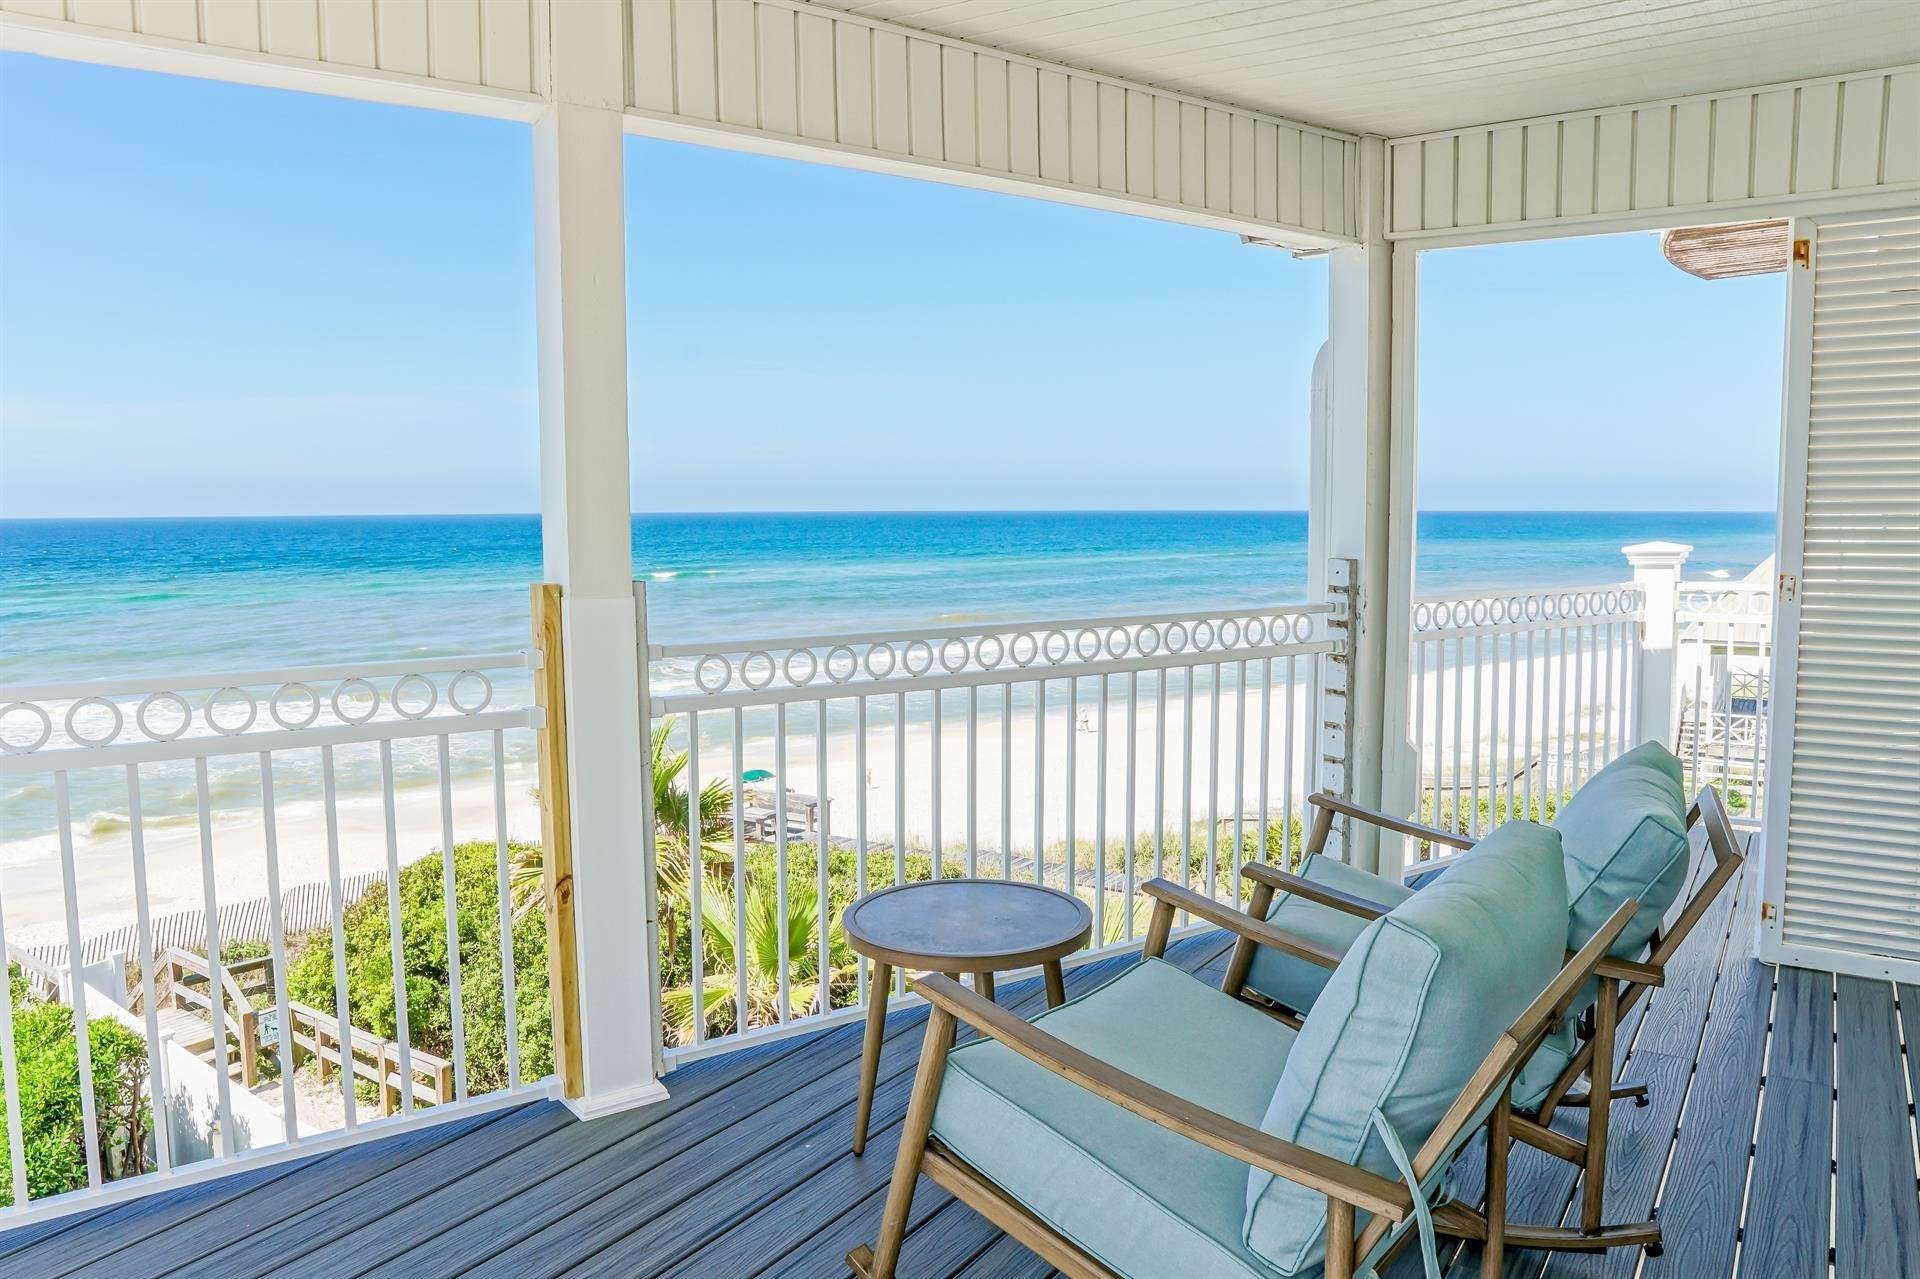 11. Single Family Home 为 出租 在 Oceanfront on Scenic 30A, Florida 8870 E. County Hwy 30A, Seacrest, FL 32461 西克雷斯特, 佛罗里达州,32461 美国